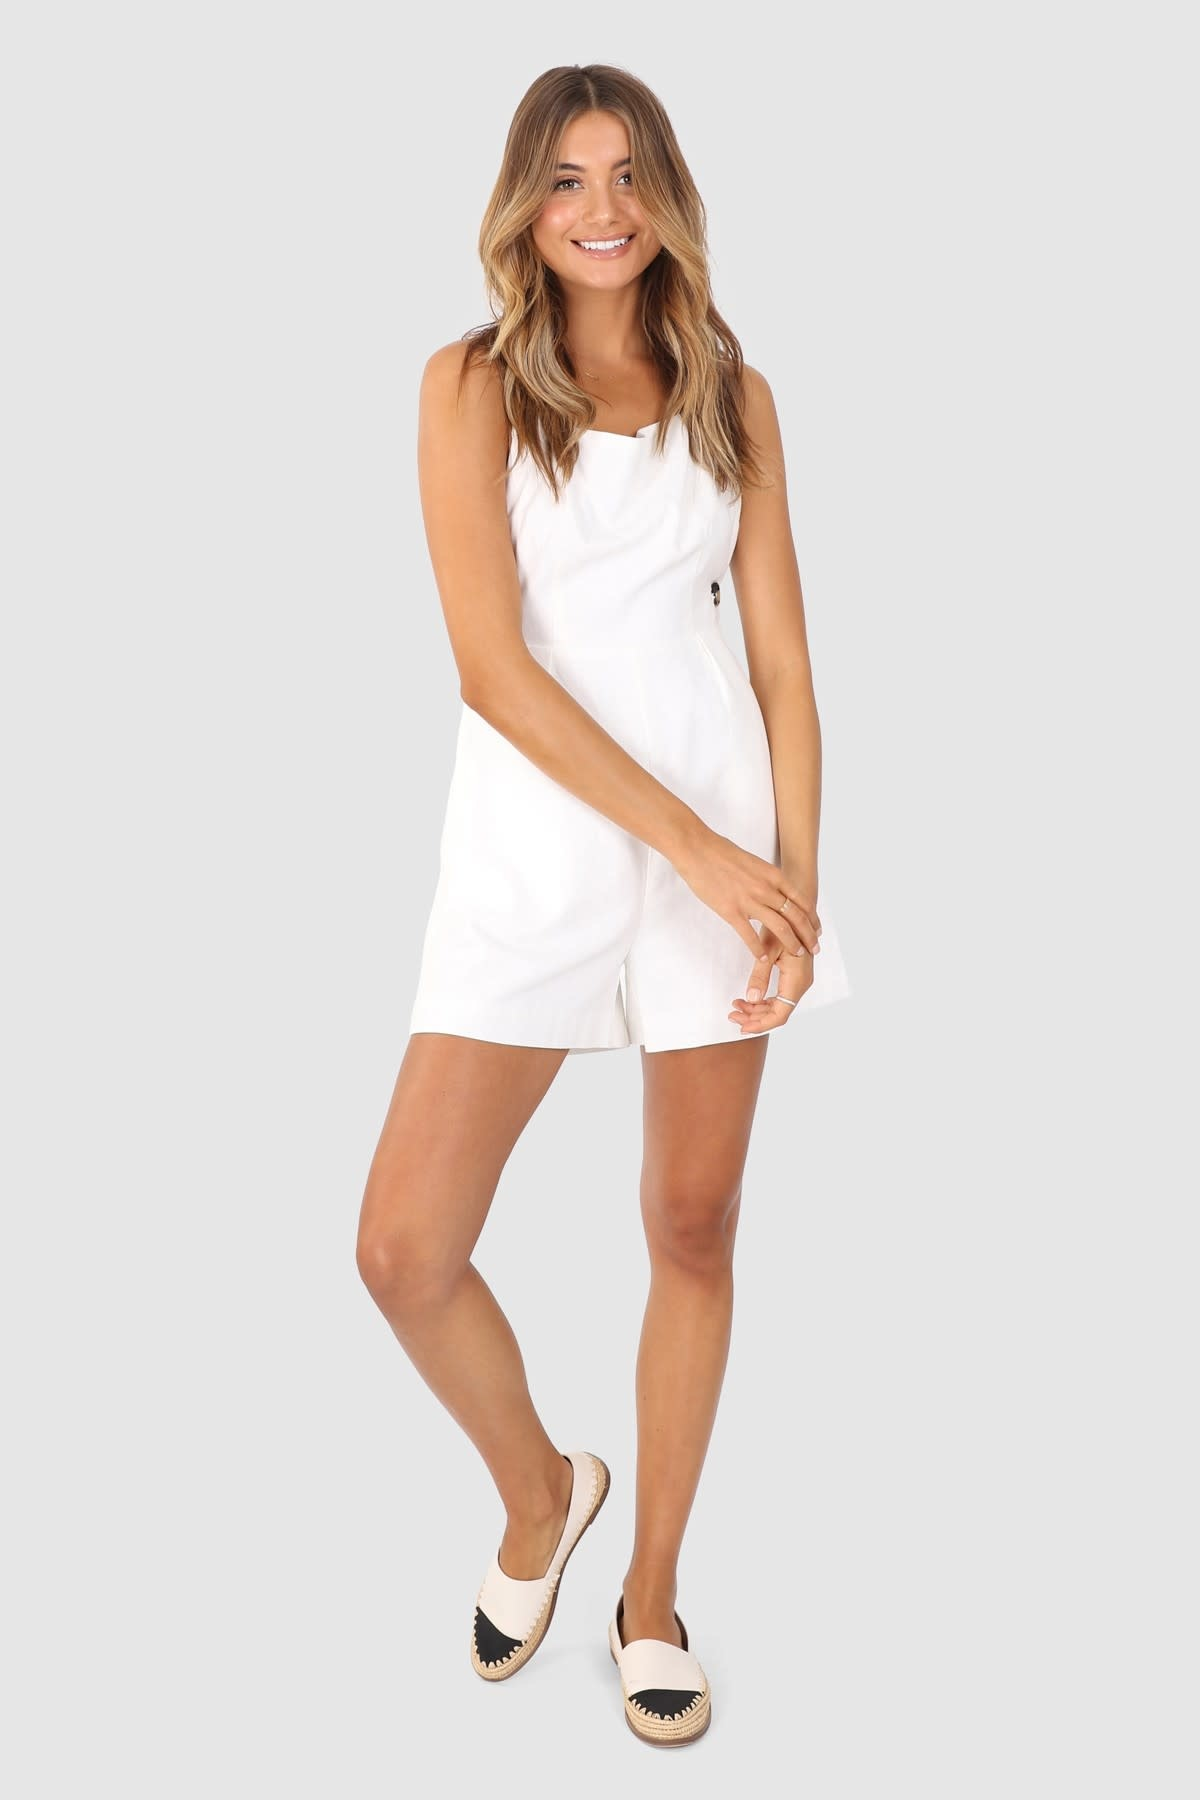 "LOST IN LUNAR LOST IN LUNAR ""ELENOR"" Linen Playsuit"